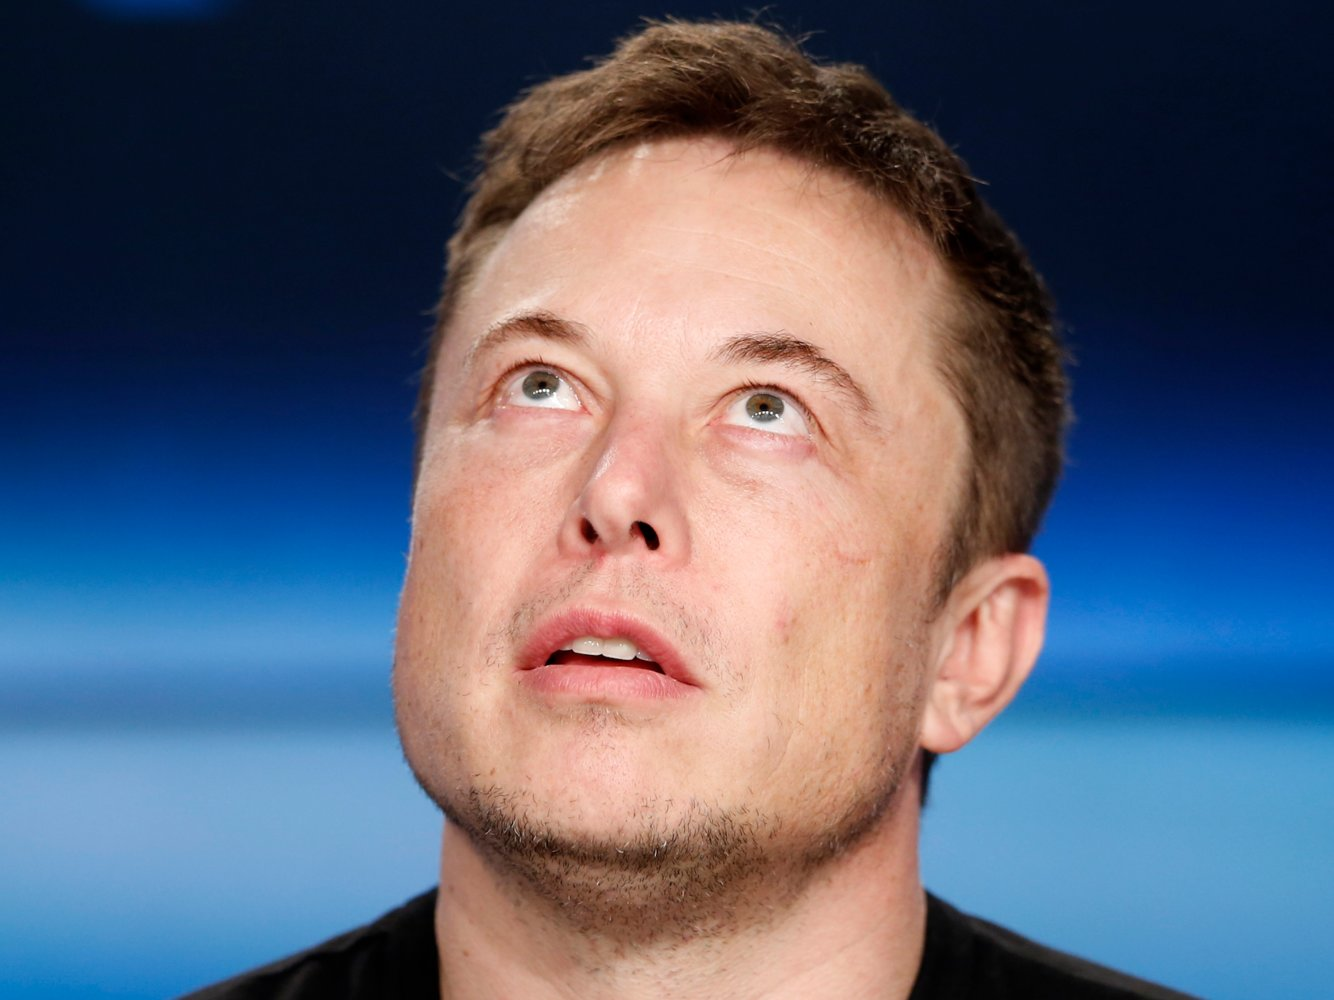 Elon Musk is already dreaming of a monster 'next-generation' Starship. If built, the rocket's body would be wider than an NBA basketball court.